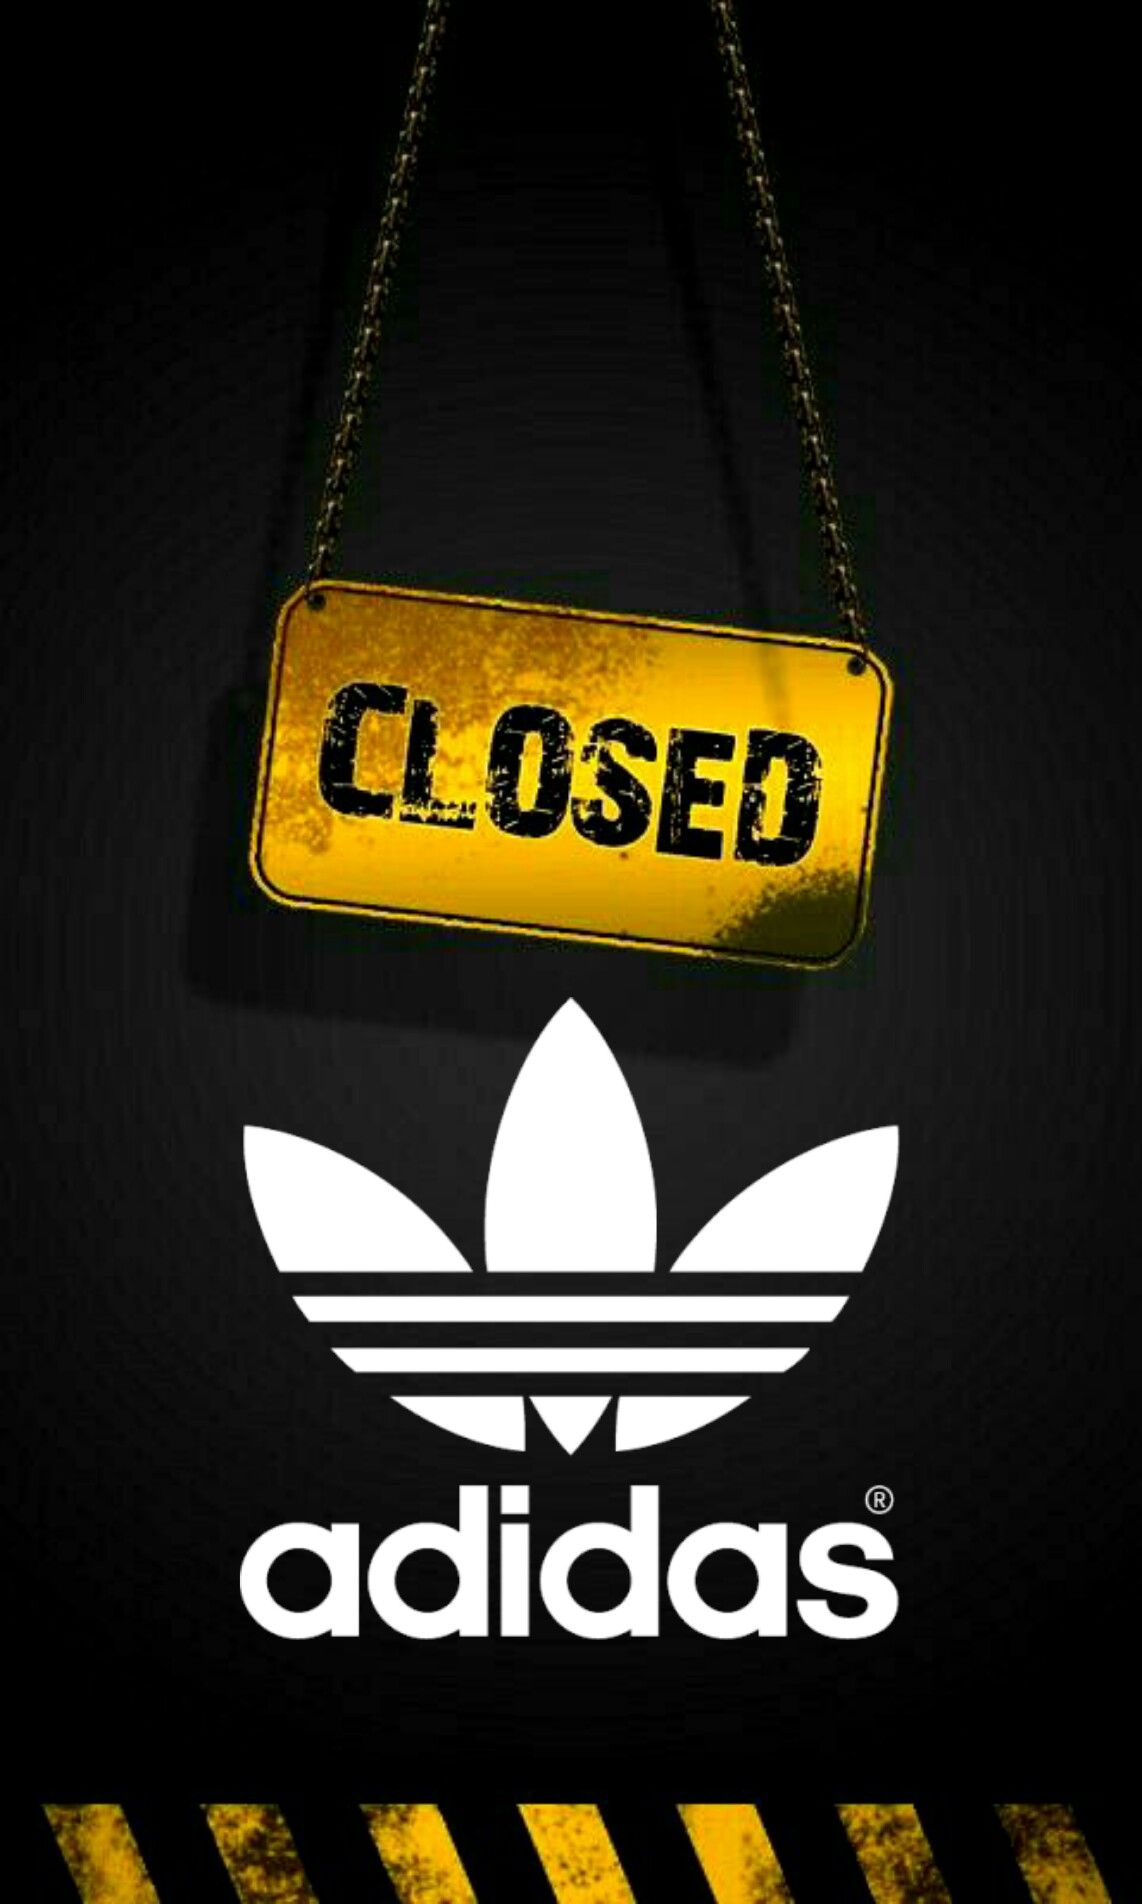 Adidas Black Wallpaper Android Iphone Famous Icons In 2019